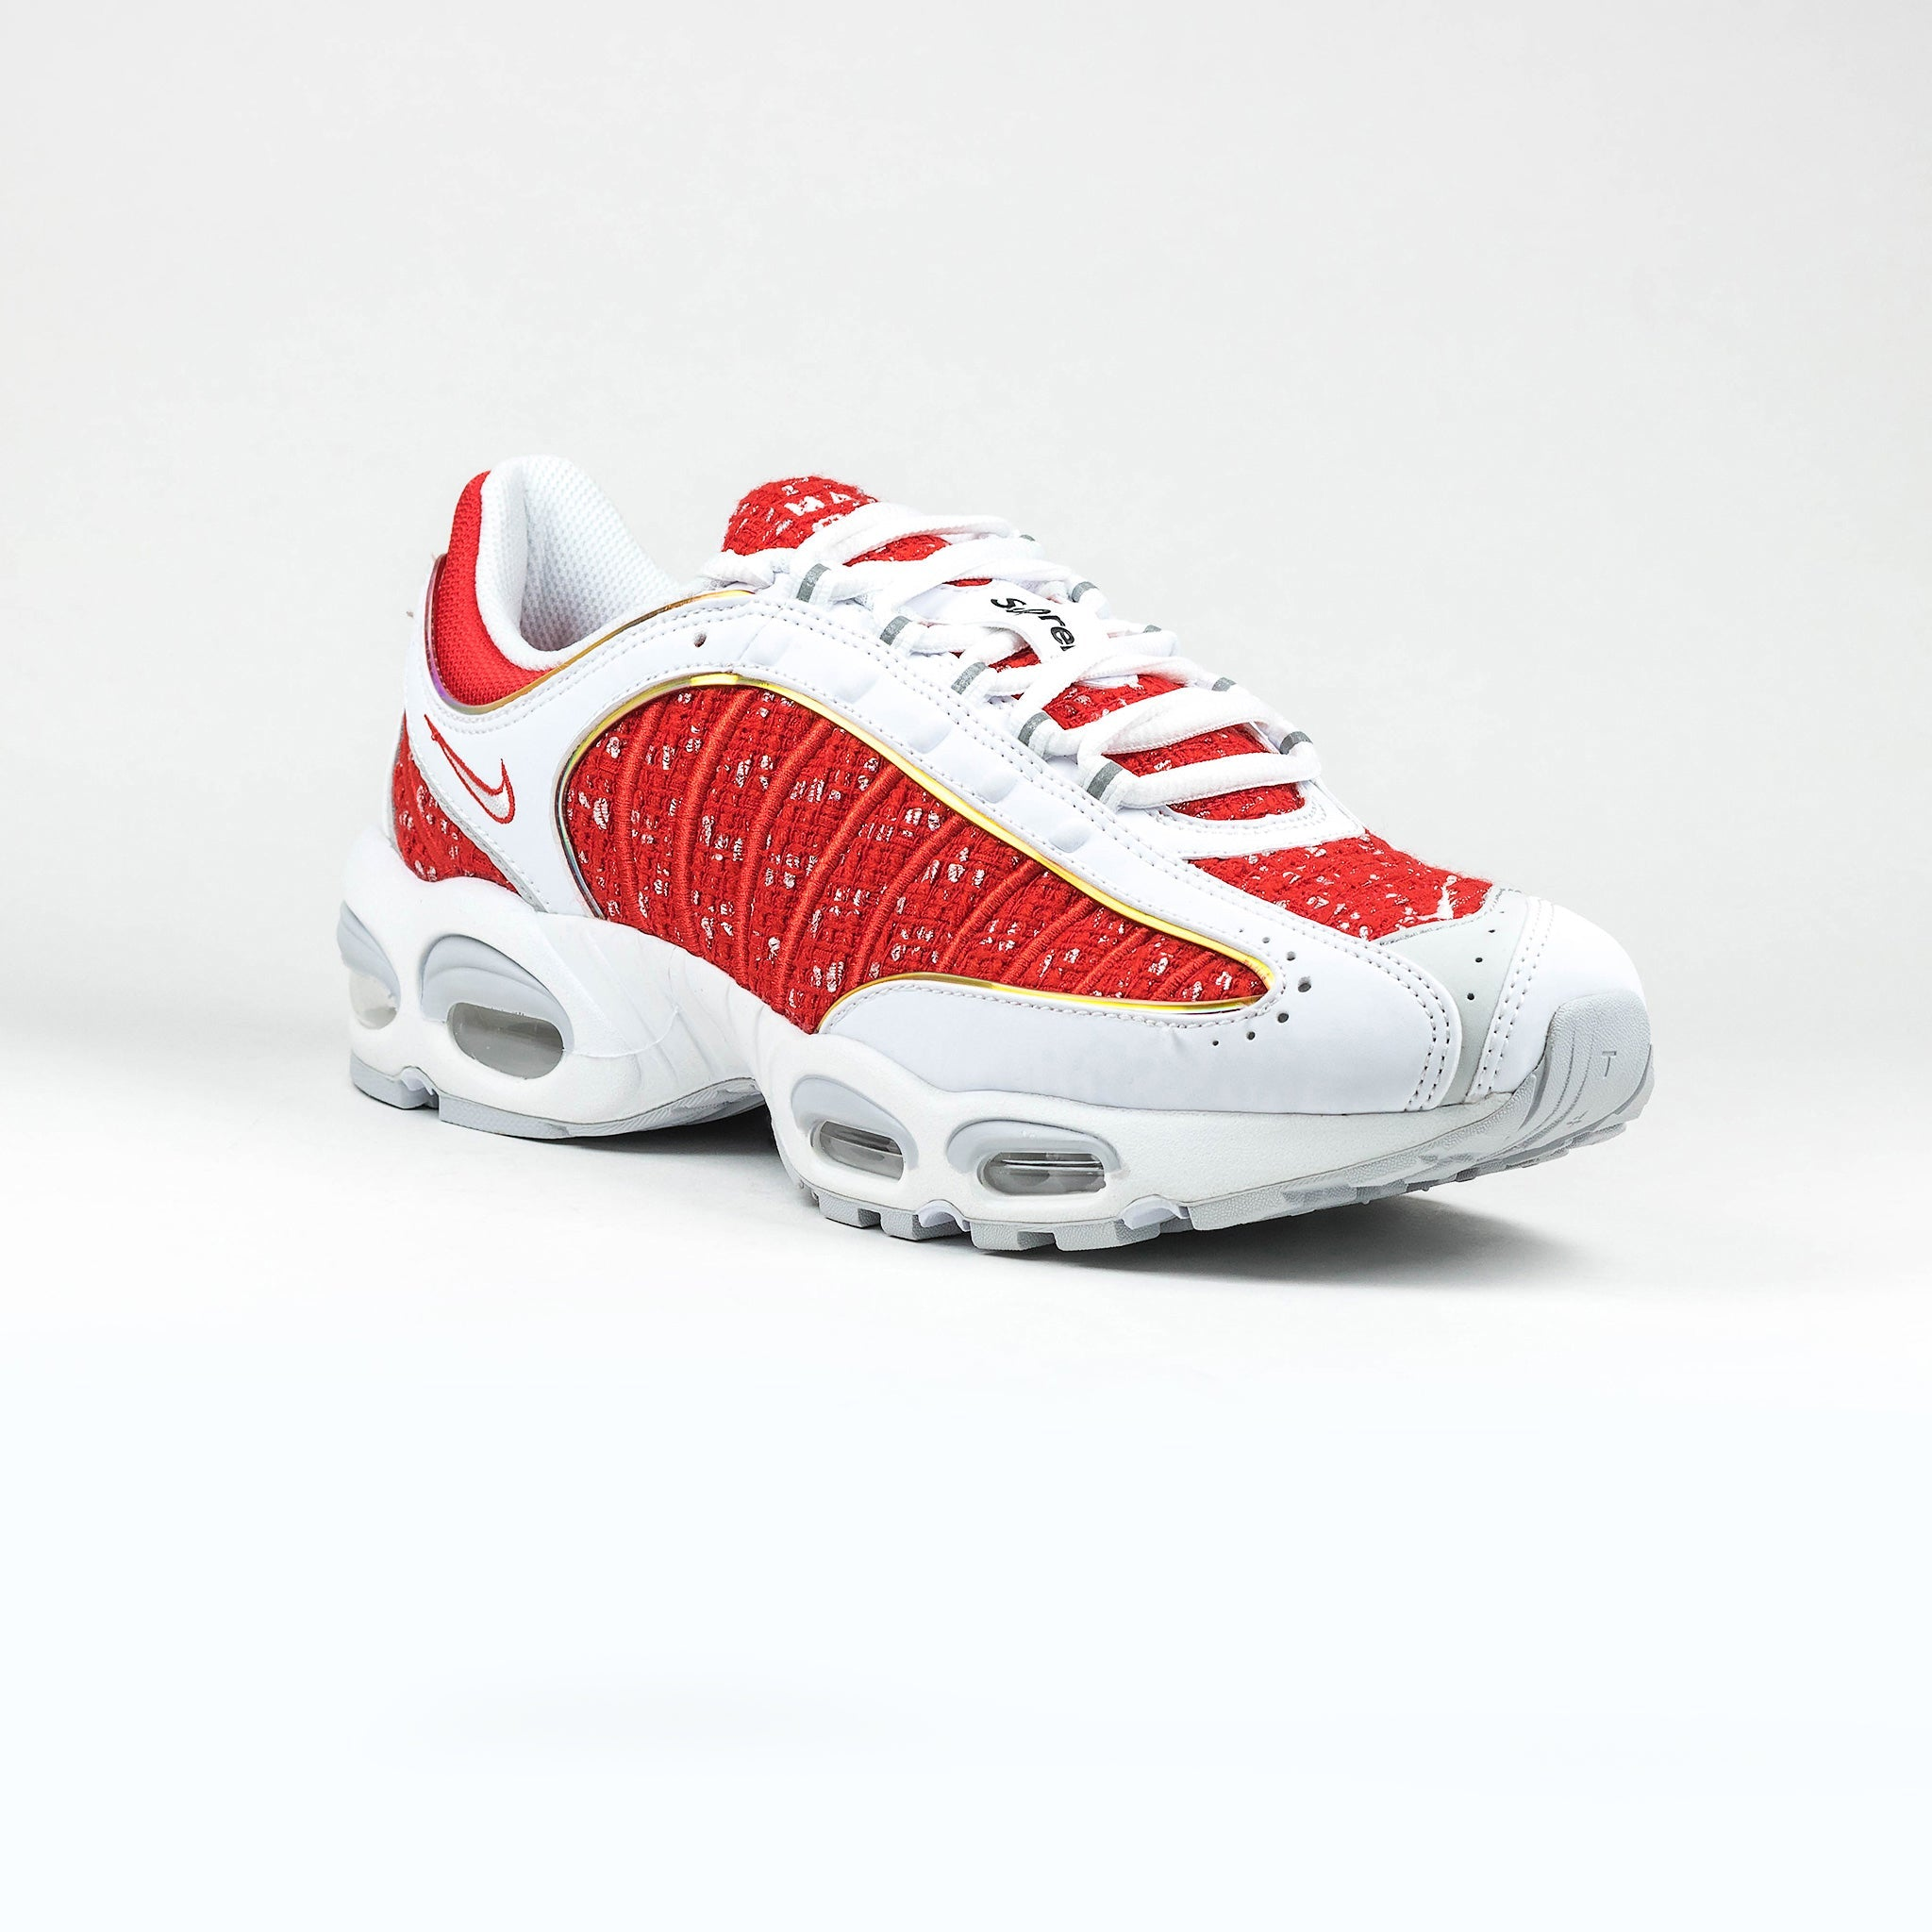 buy online 5097a 3c35b Nike x Supreme Air Max Tailwind 4 White Red